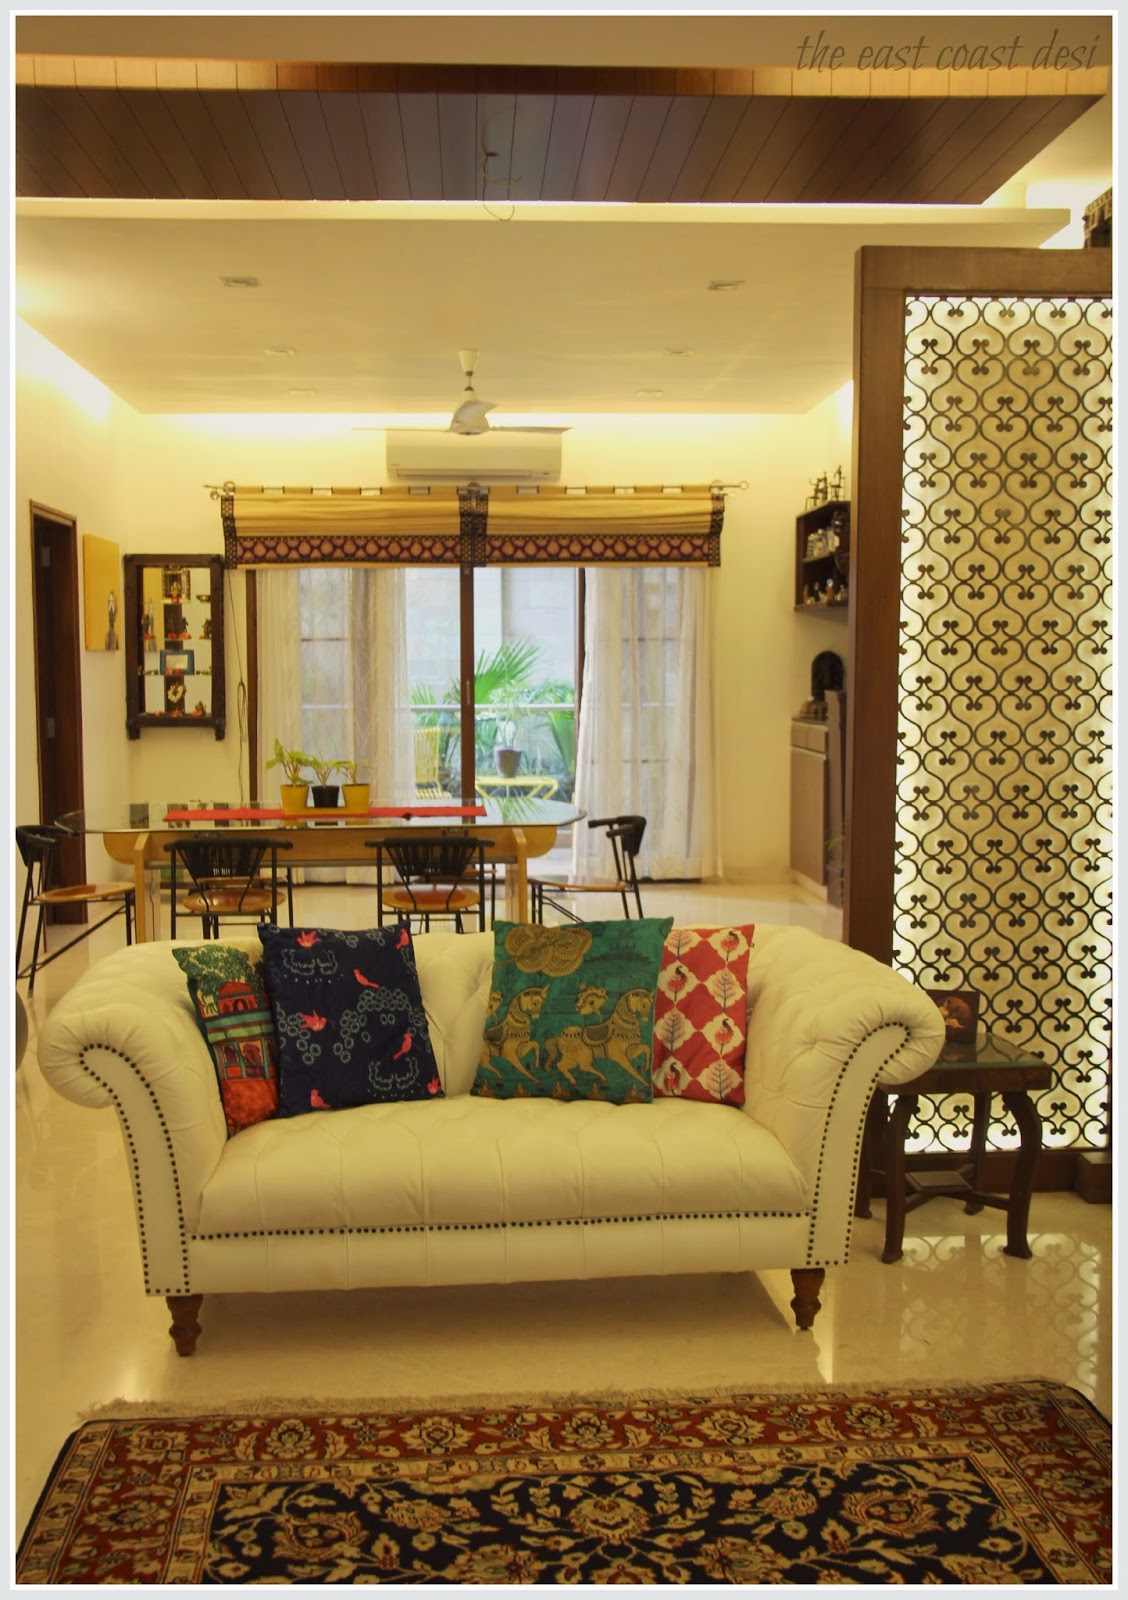 The east coast desi masterful mixing home tour for Home interiors decor